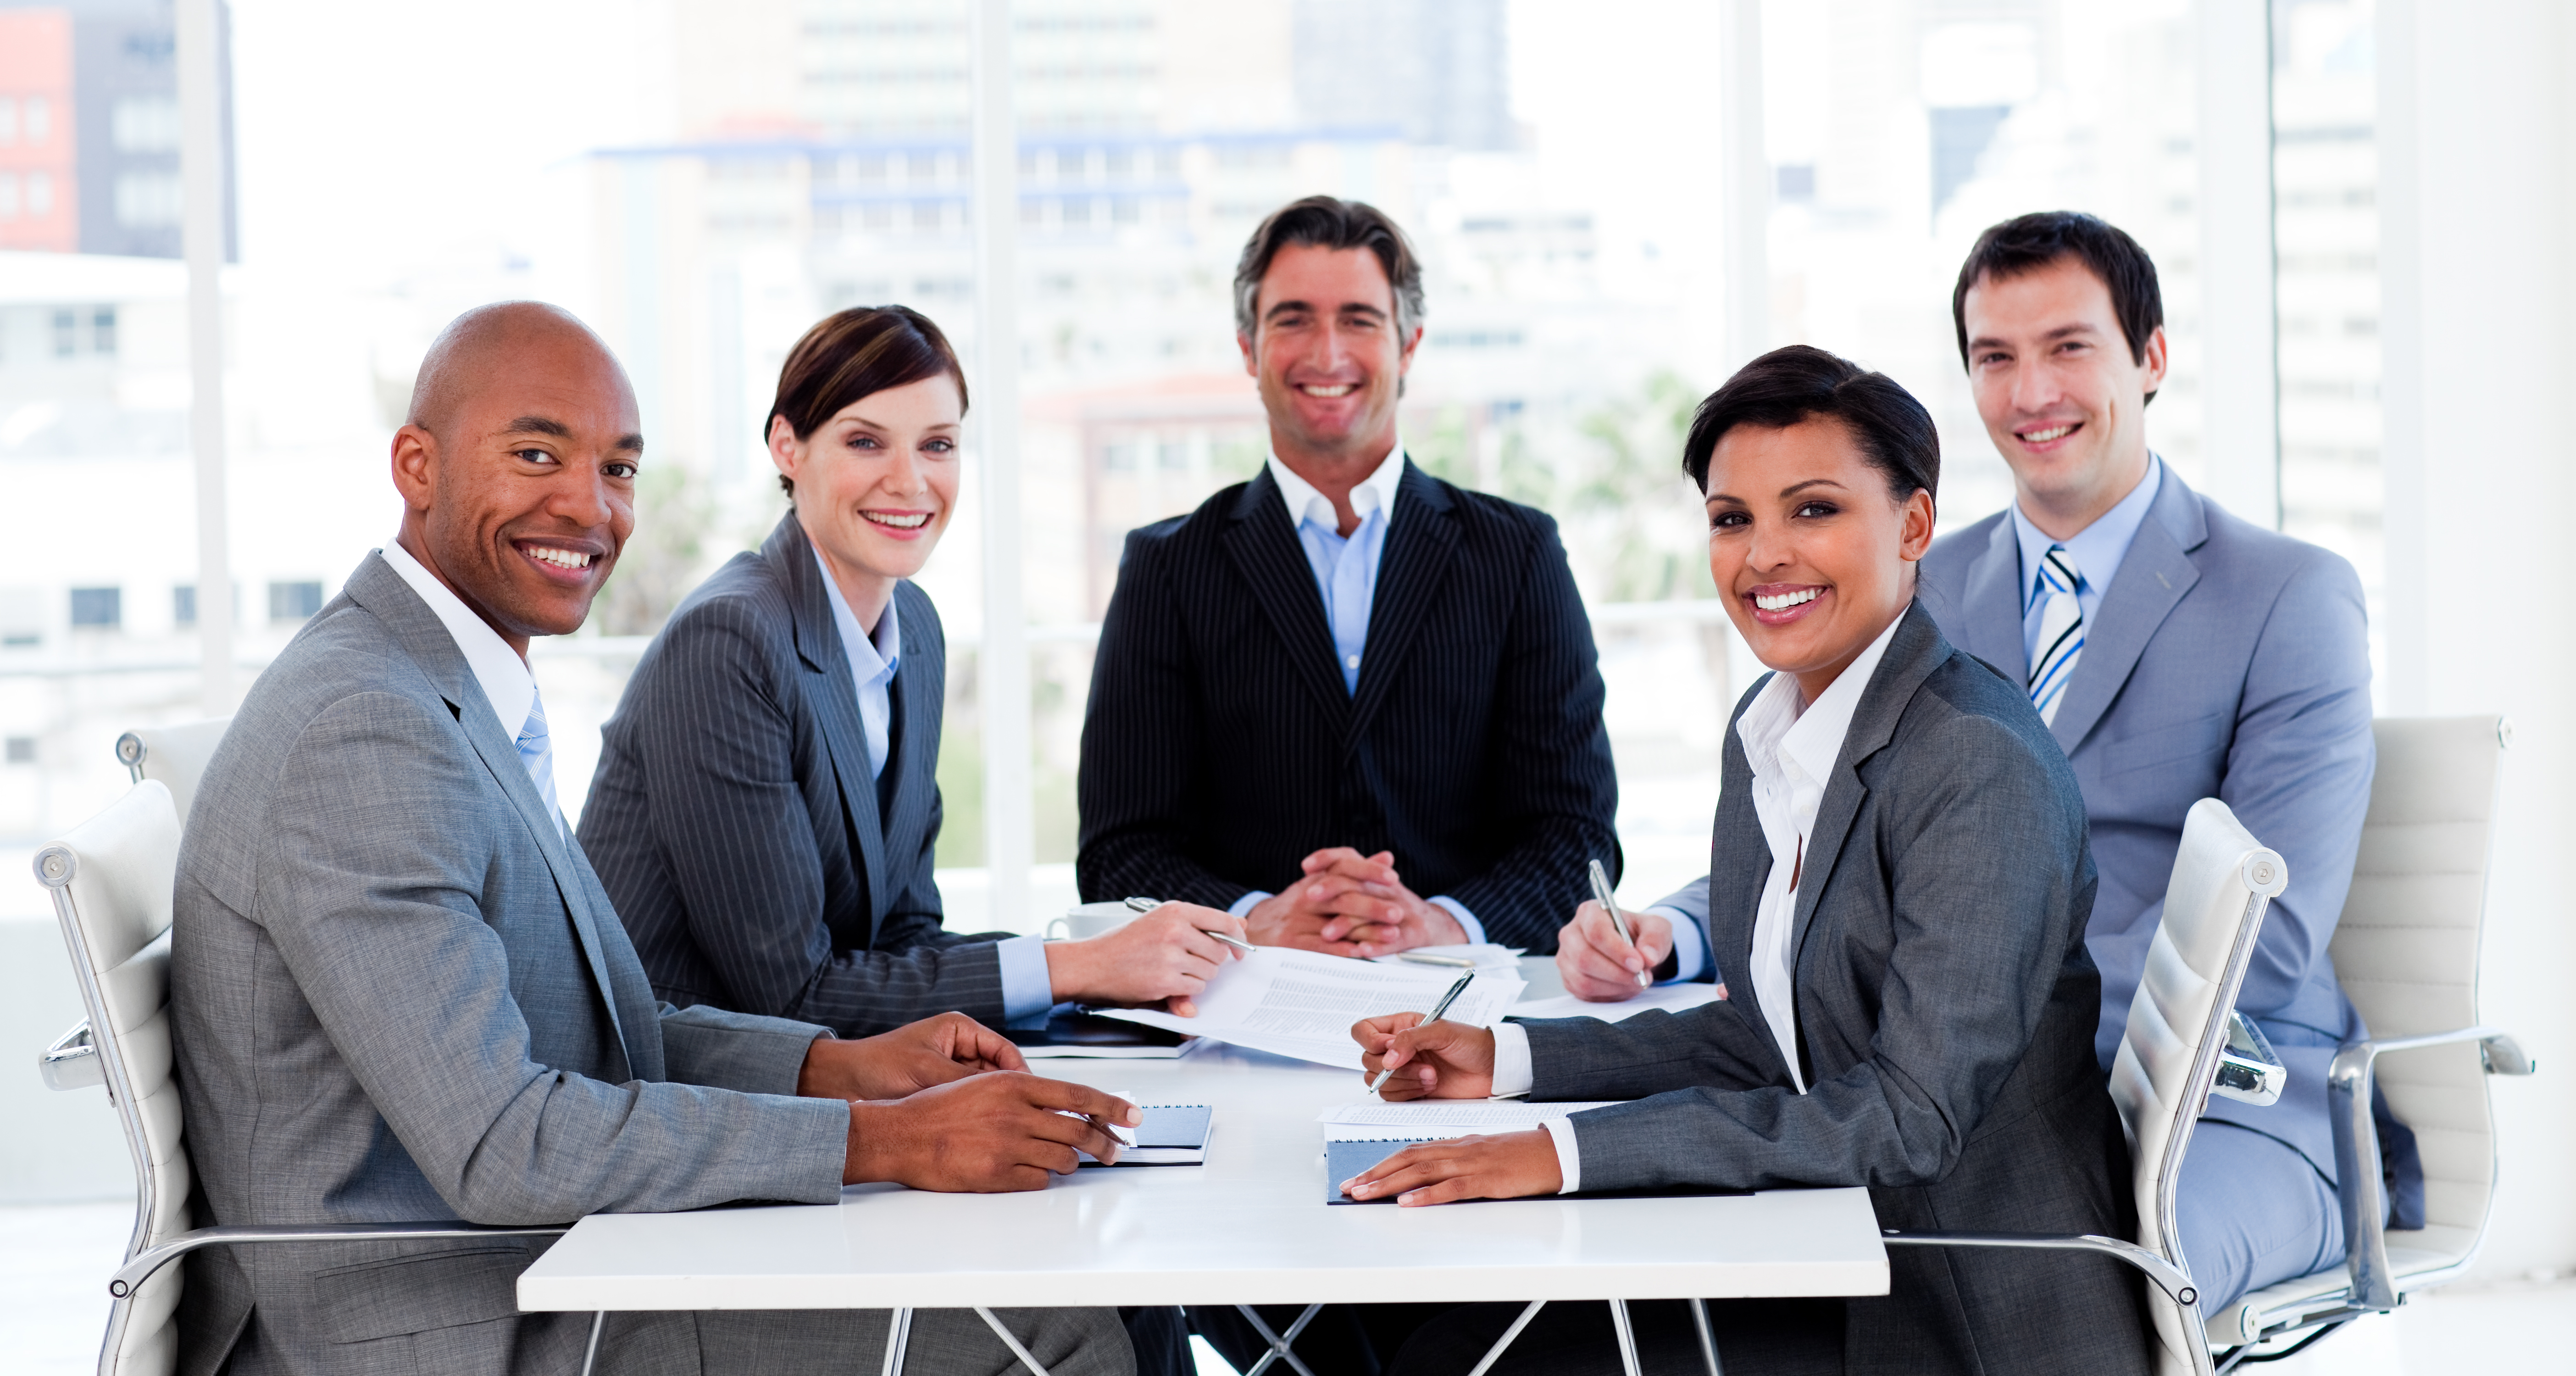 Business group showing ethnic diversity in a meeting smiling at the camera